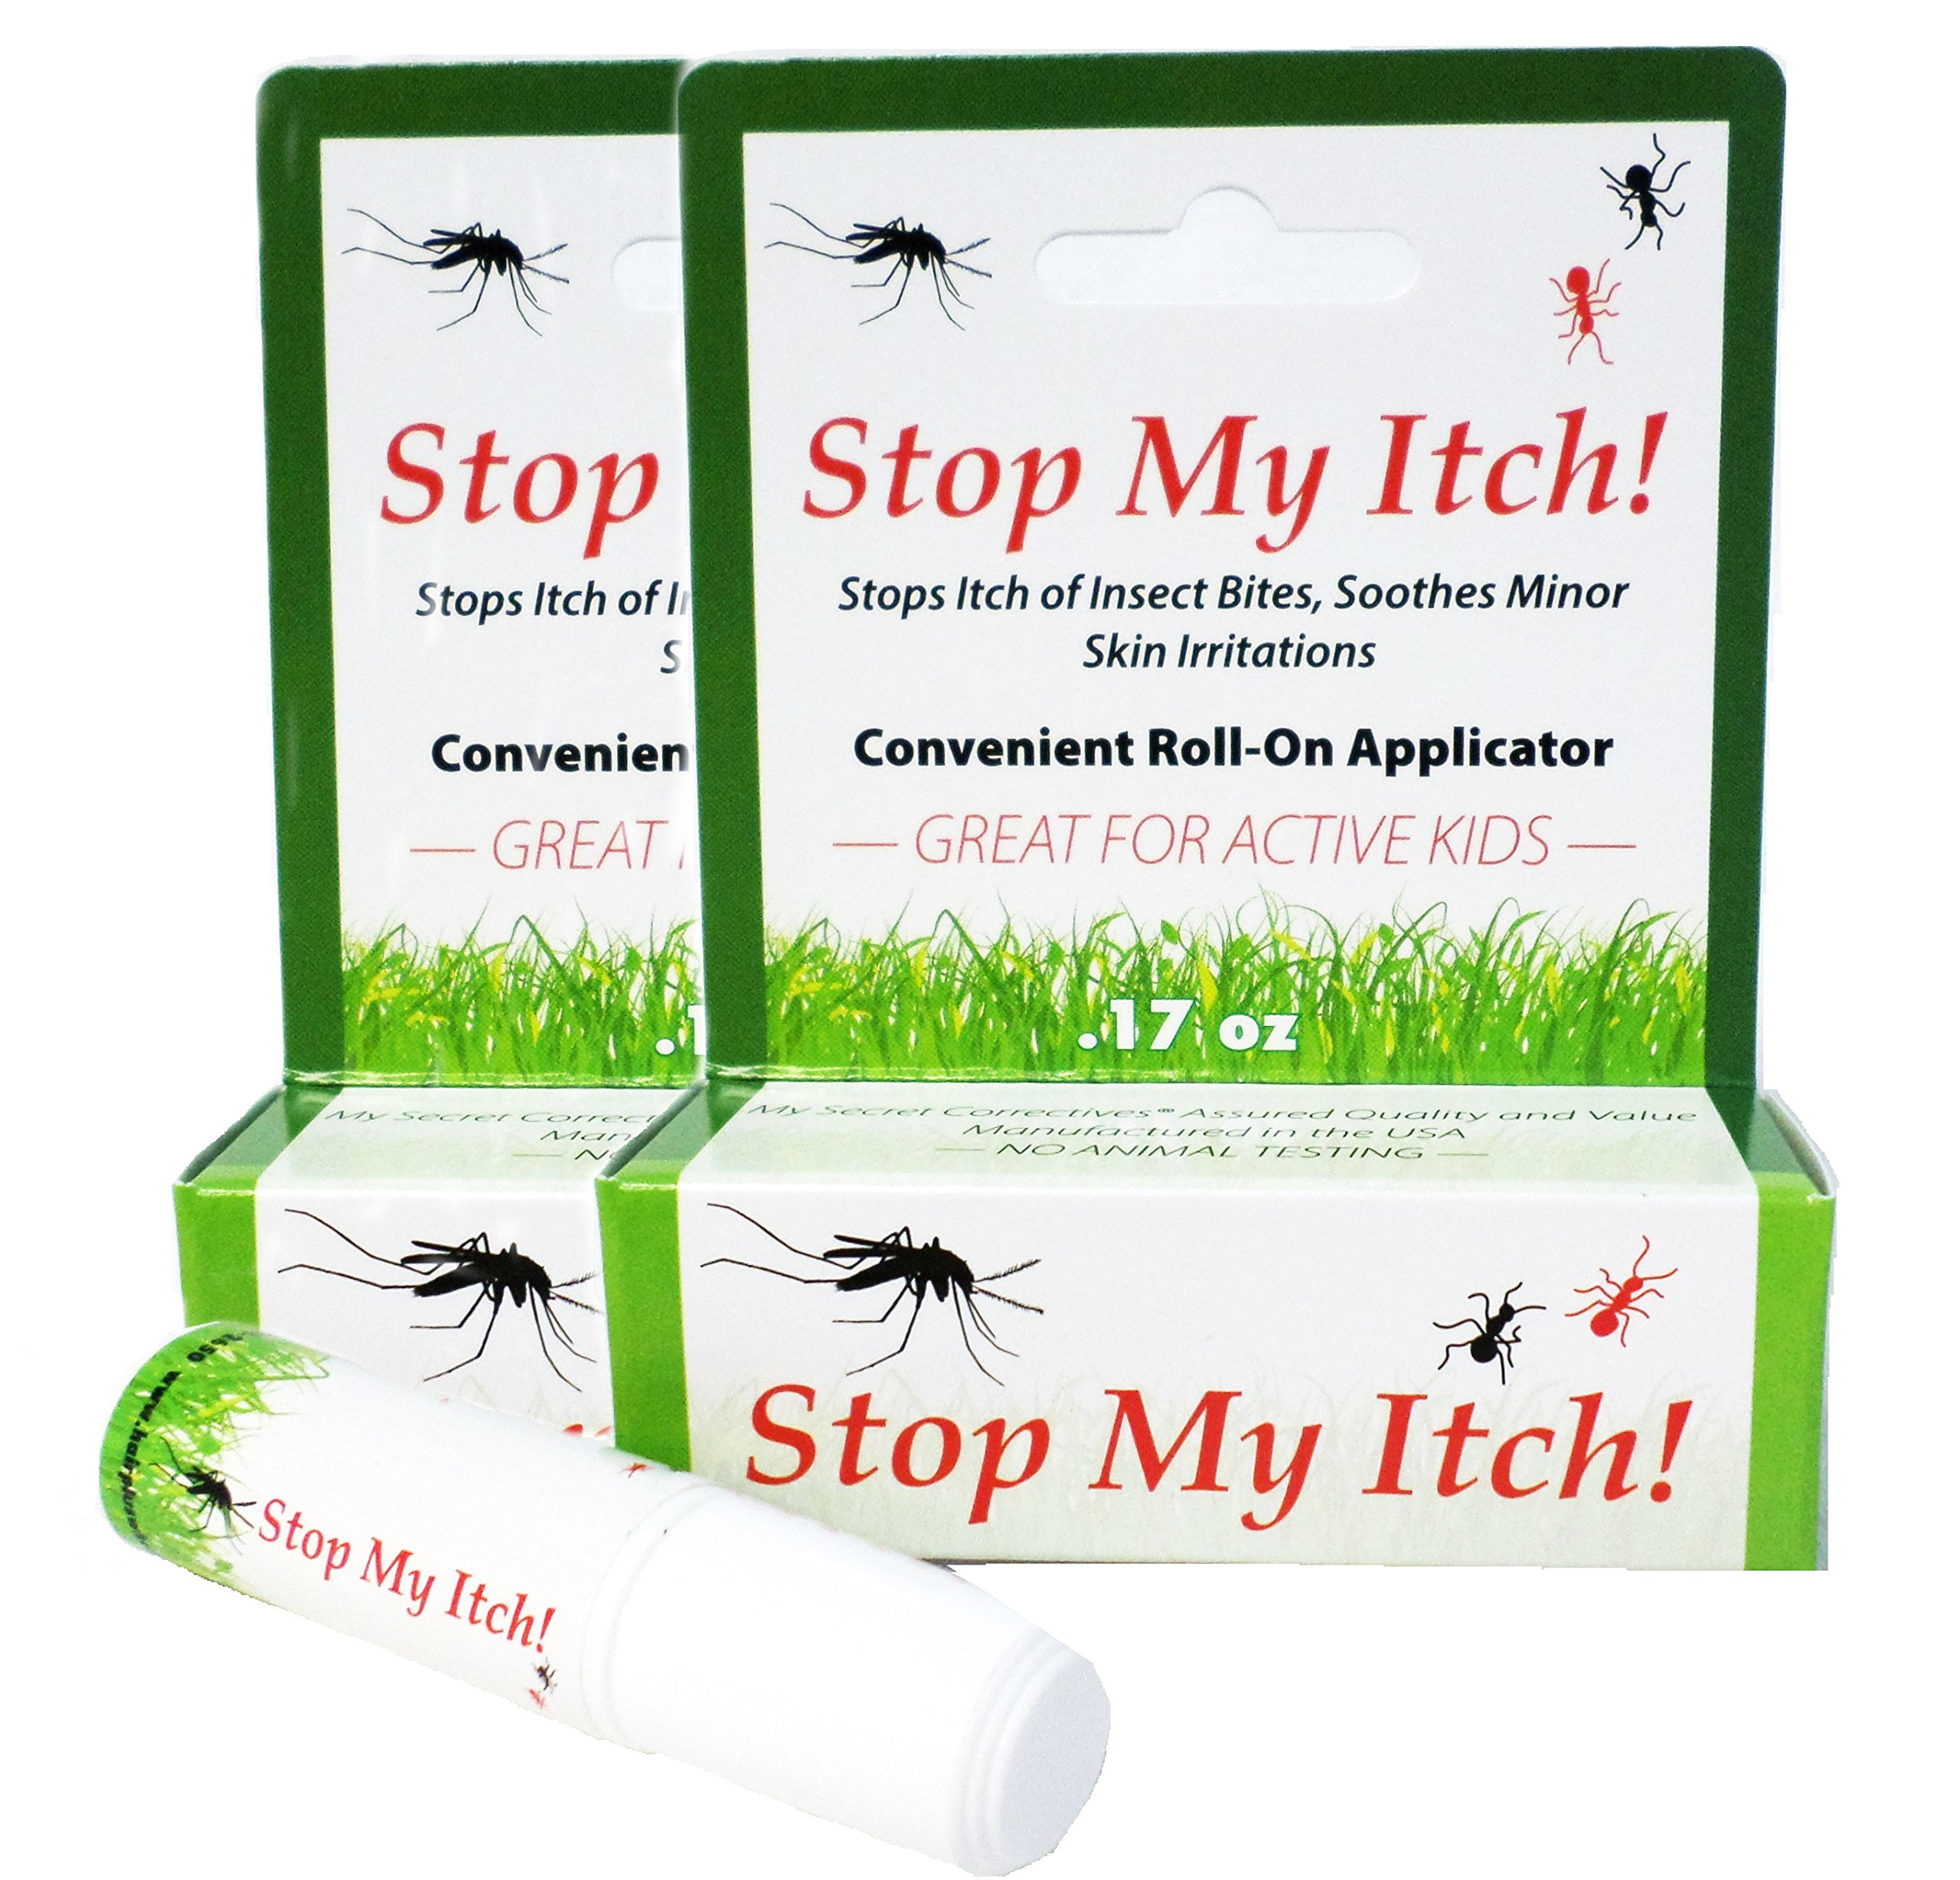 Stop My Itch! Two Pack/Instantly Stops The Itch of Mosquito Bites (Also Gnats, Ticks, Flies, May Flies and Many More); Soothes Scrapes and Minor Skin Irritation. Quick and Effective/0.17